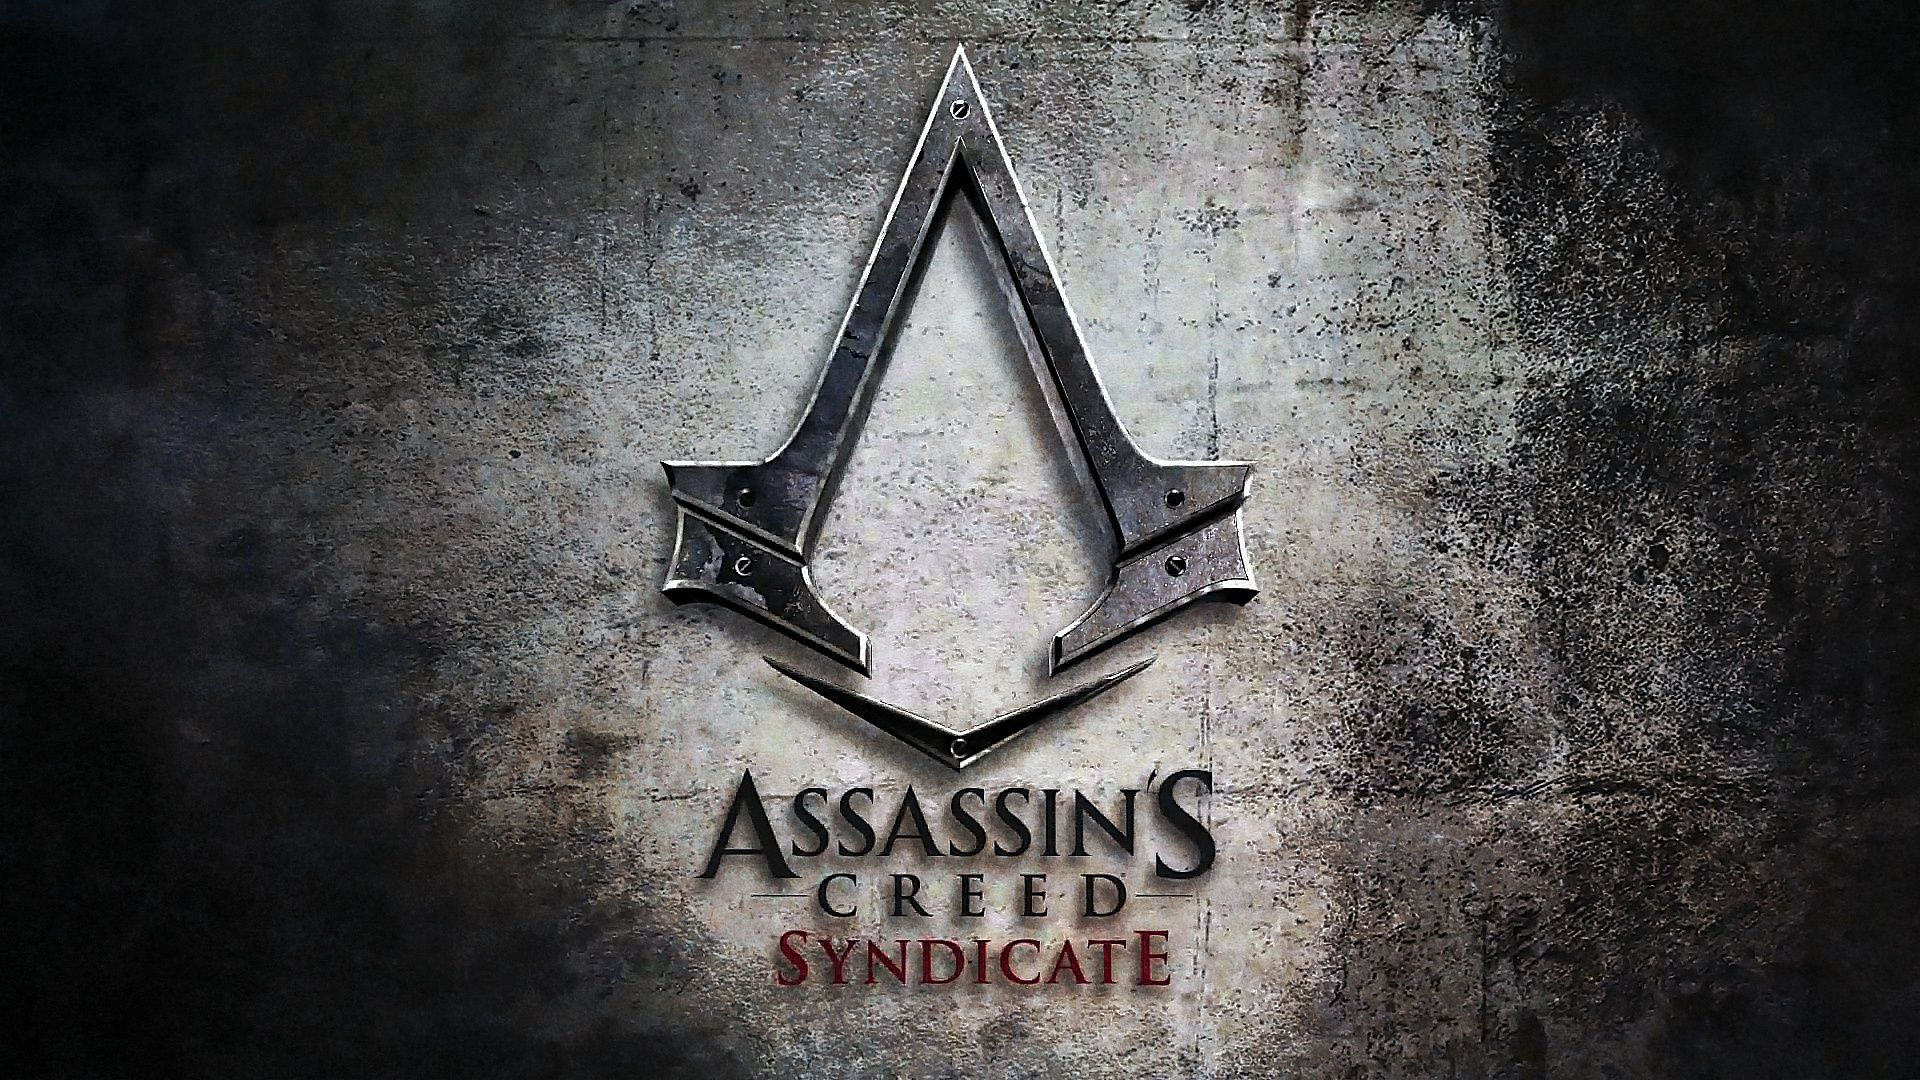 Assassins creed syndicate cool logo wallpaper hd. Gaming